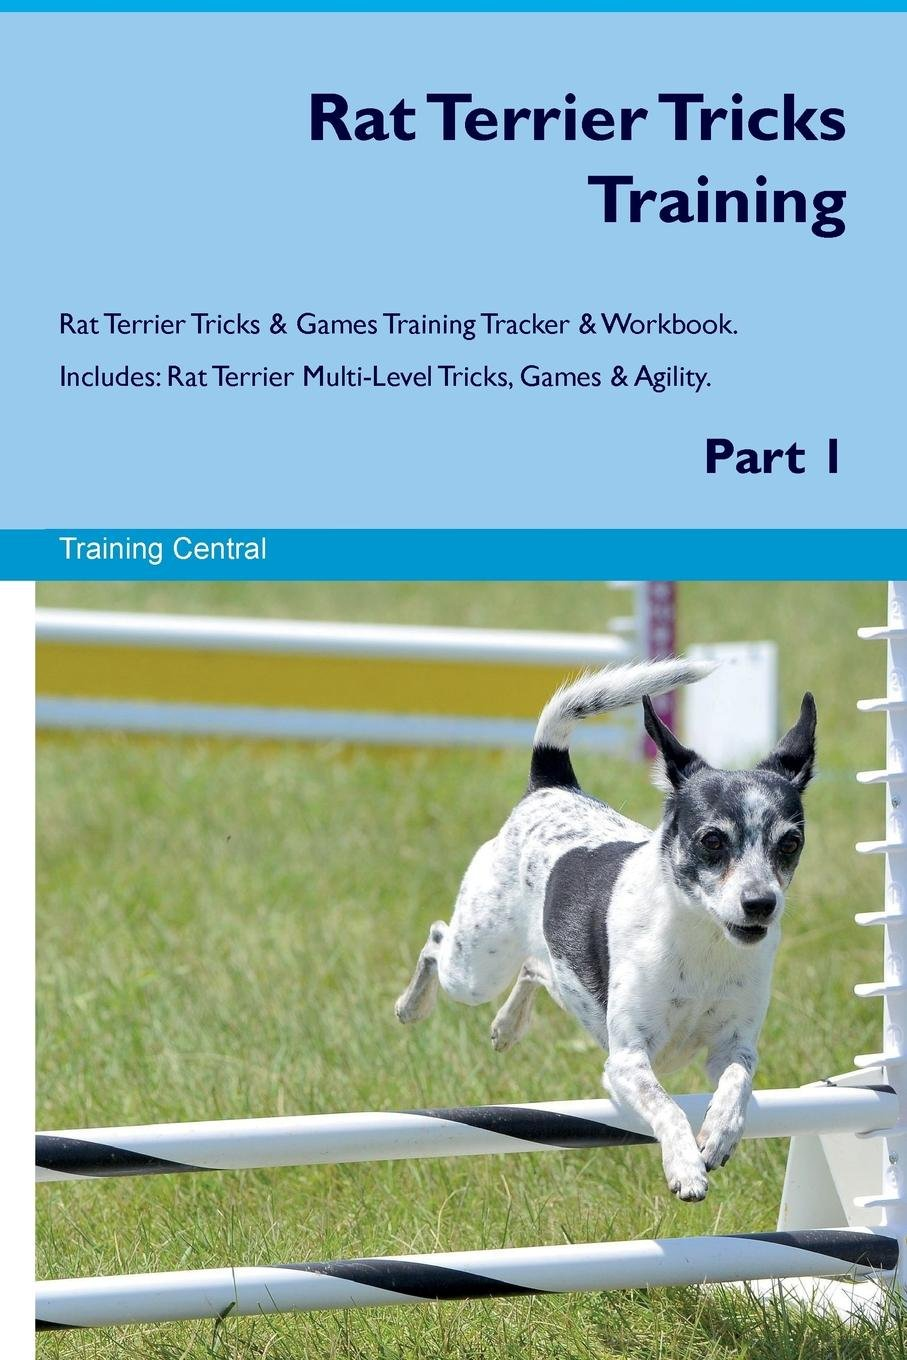 Rat Terrier Tricks Training Rat Terrier Tricks & Games Training Tracker & Workbook.  Includes: Rat Terrier Multi-Level Tricks, Games & Agility. Part 1 pdf epub